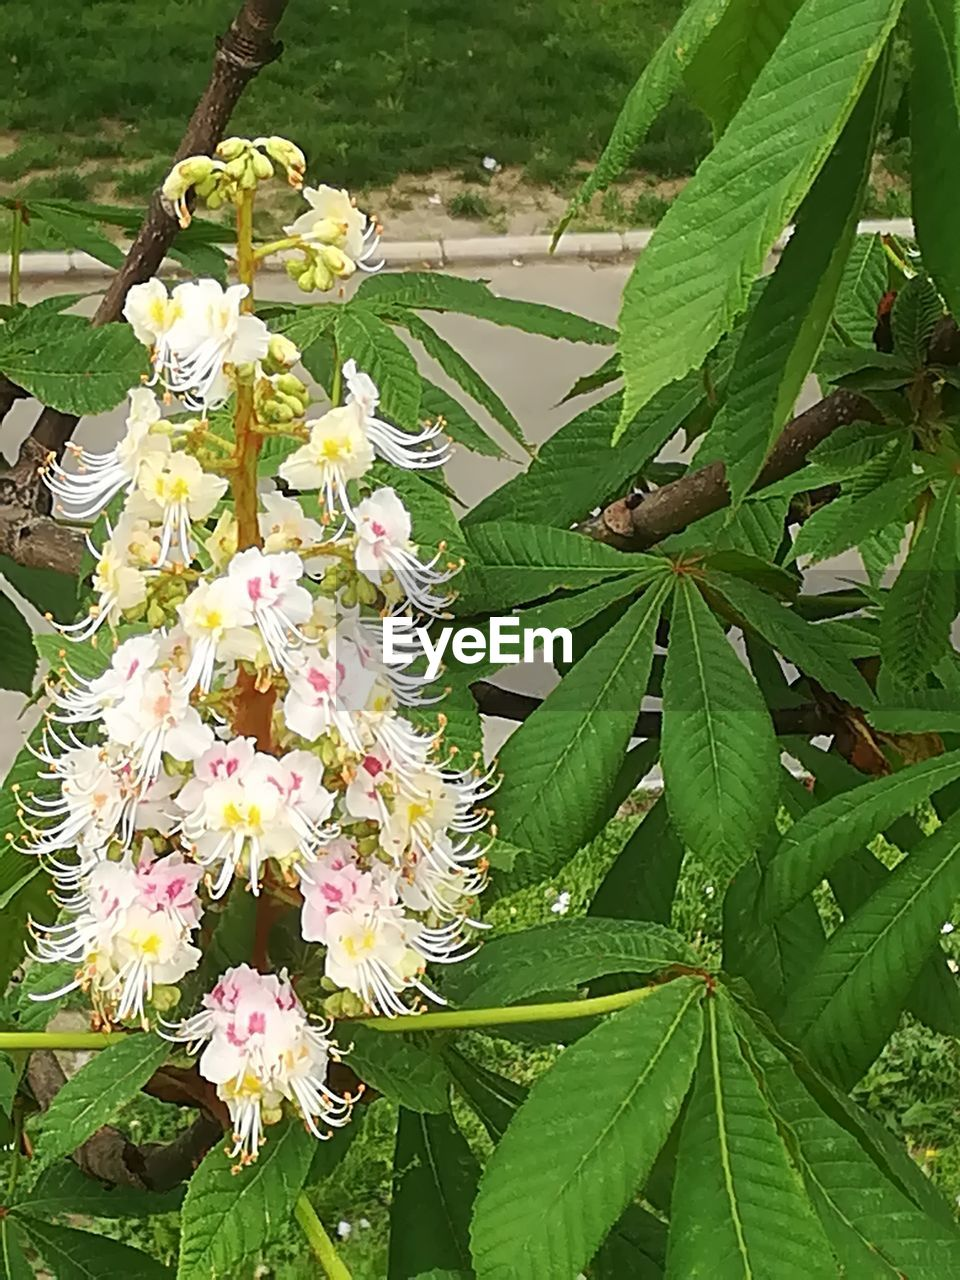 flowering plant, plant, flower, leaf, plant part, growth, beauty in nature, fragility, vulnerability, freshness, close-up, petal, green color, nature, day, no people, flower head, botany, inflorescence, white color, outdoors, springtime, pollen